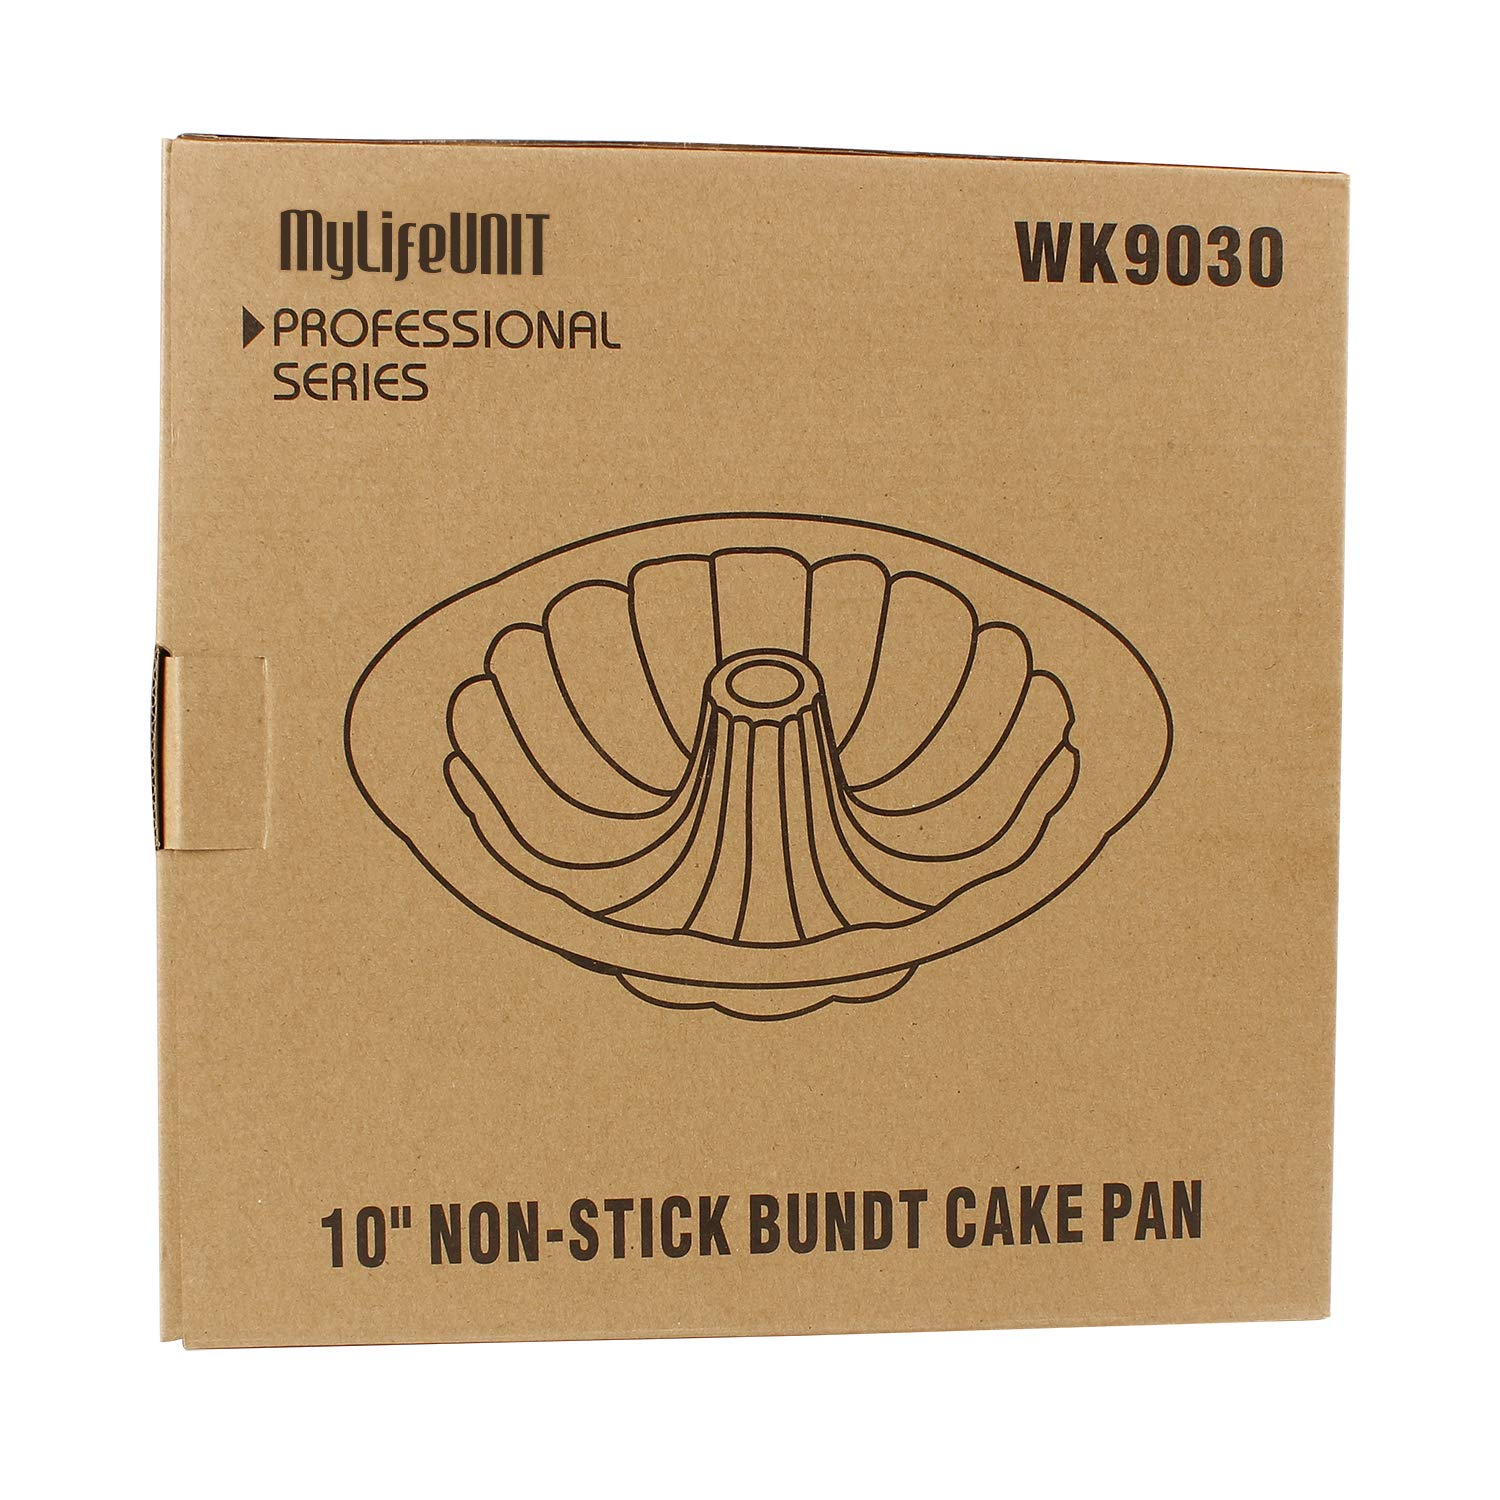 MyLifeUNIT Carbon Steel Bundt Cake Pan, Nonstick Bundt Pan with Handles, 10-Inch by MyLifeUNIT (Image #7)